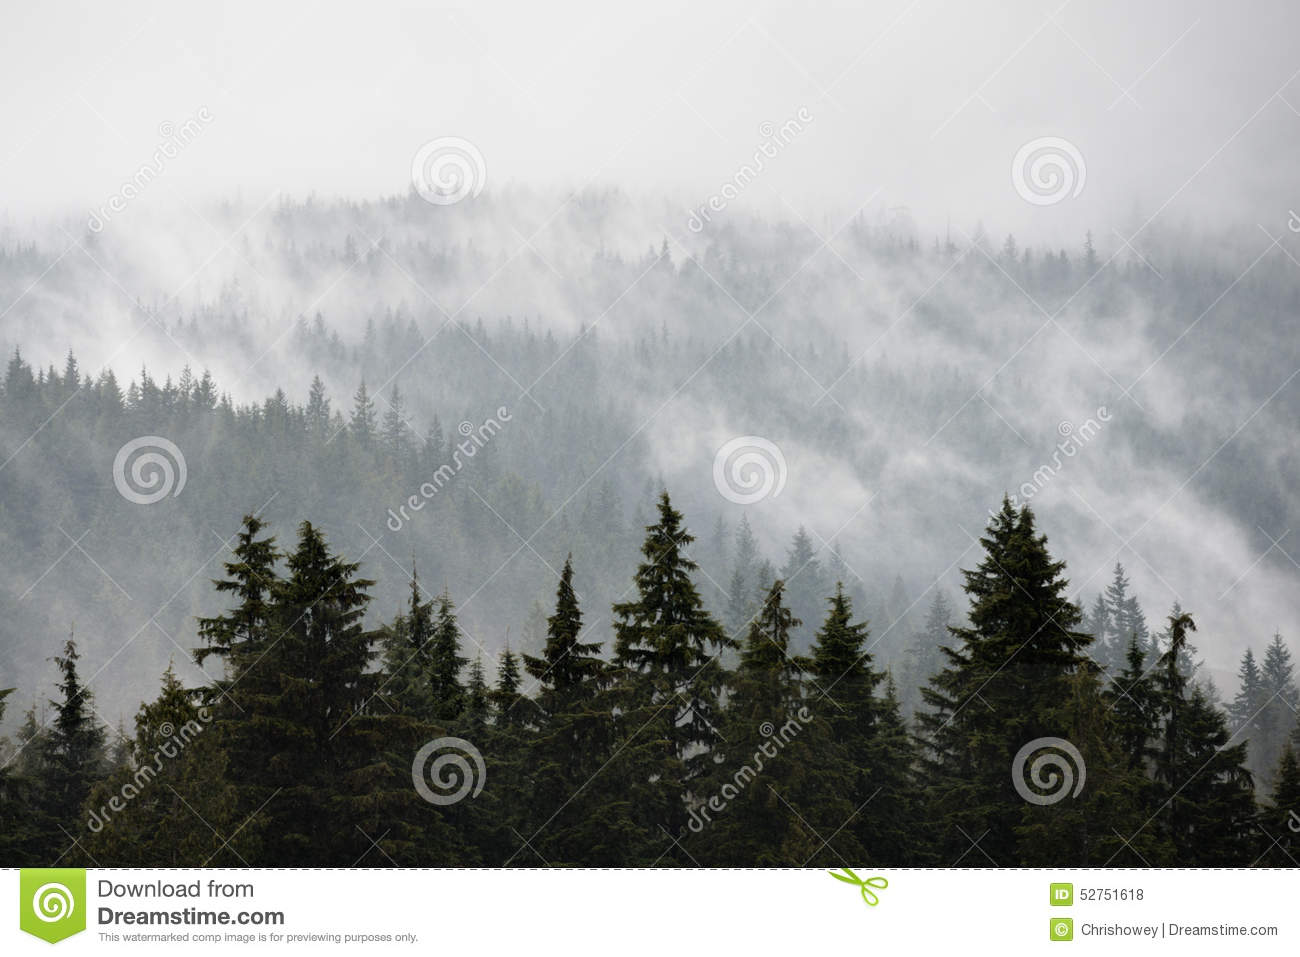 Noord-Vancouver Misty Trees